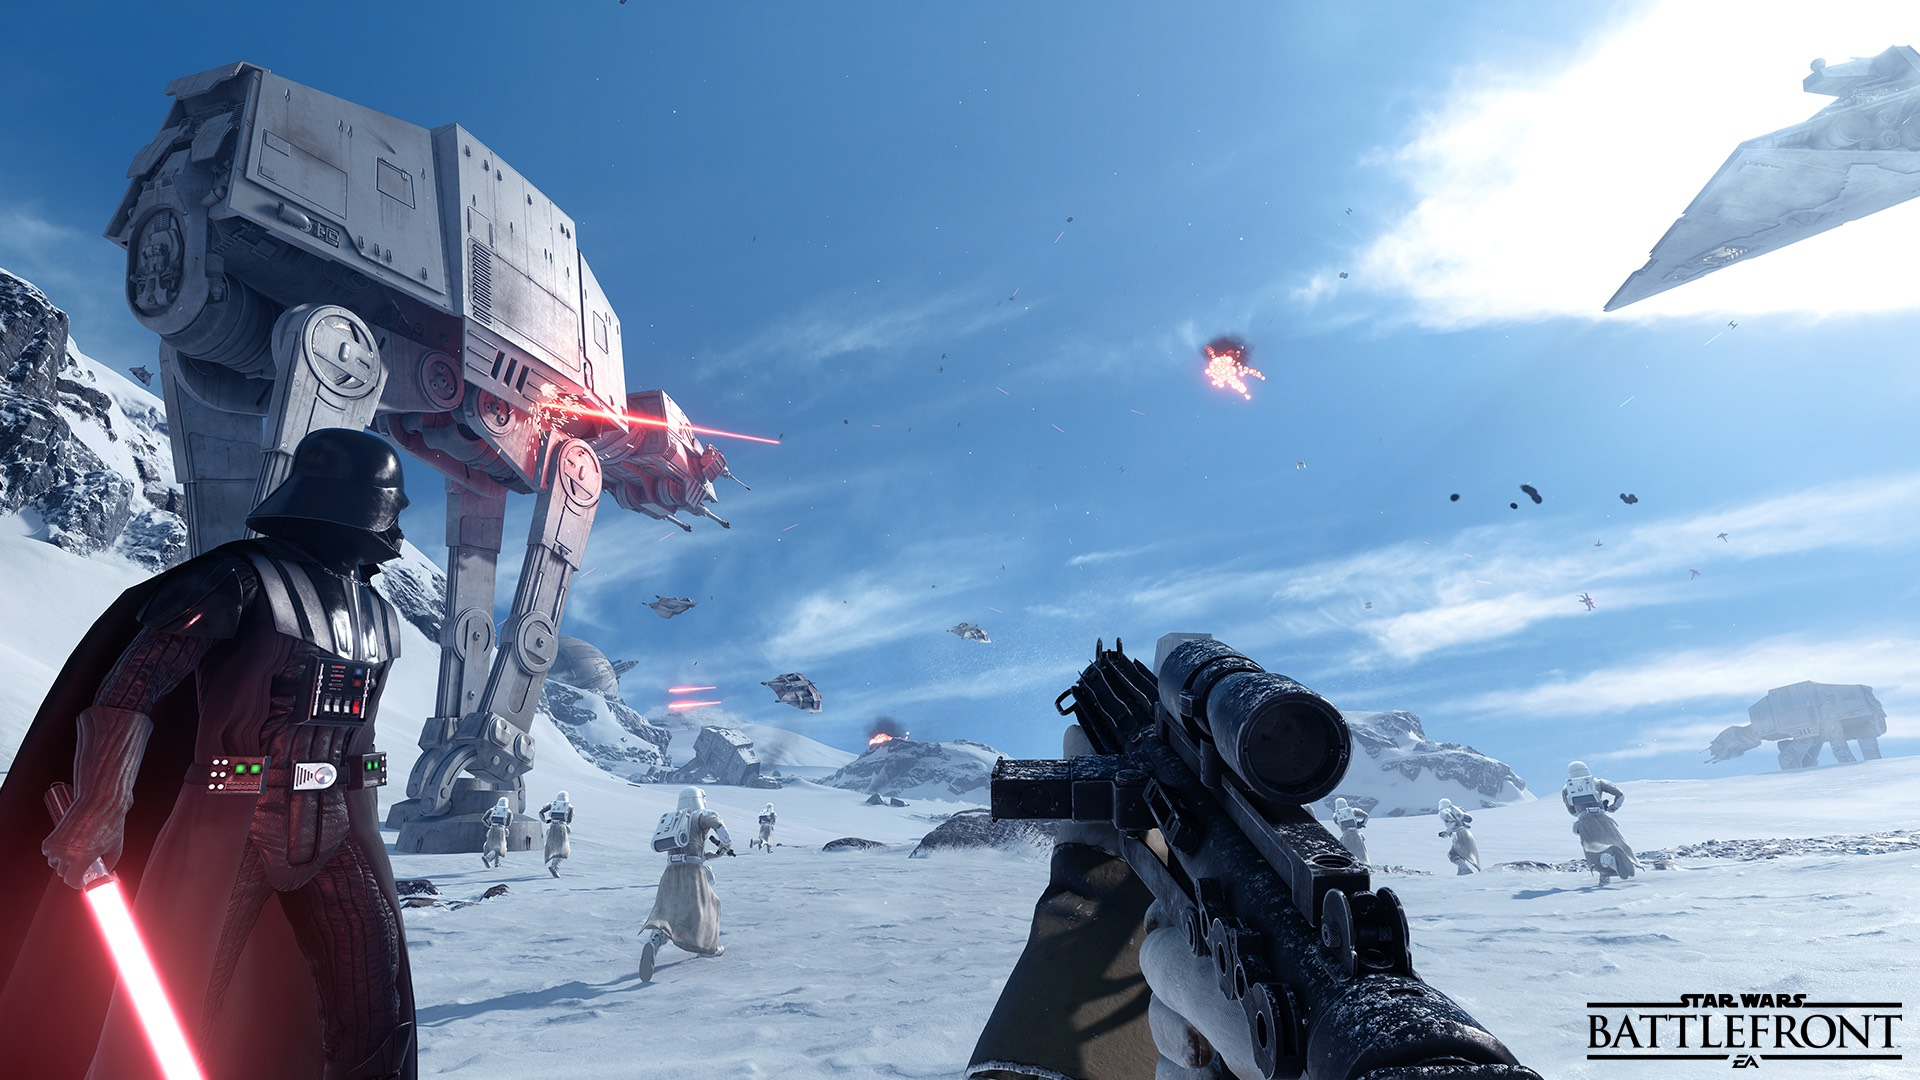 starwars-battlefront-002